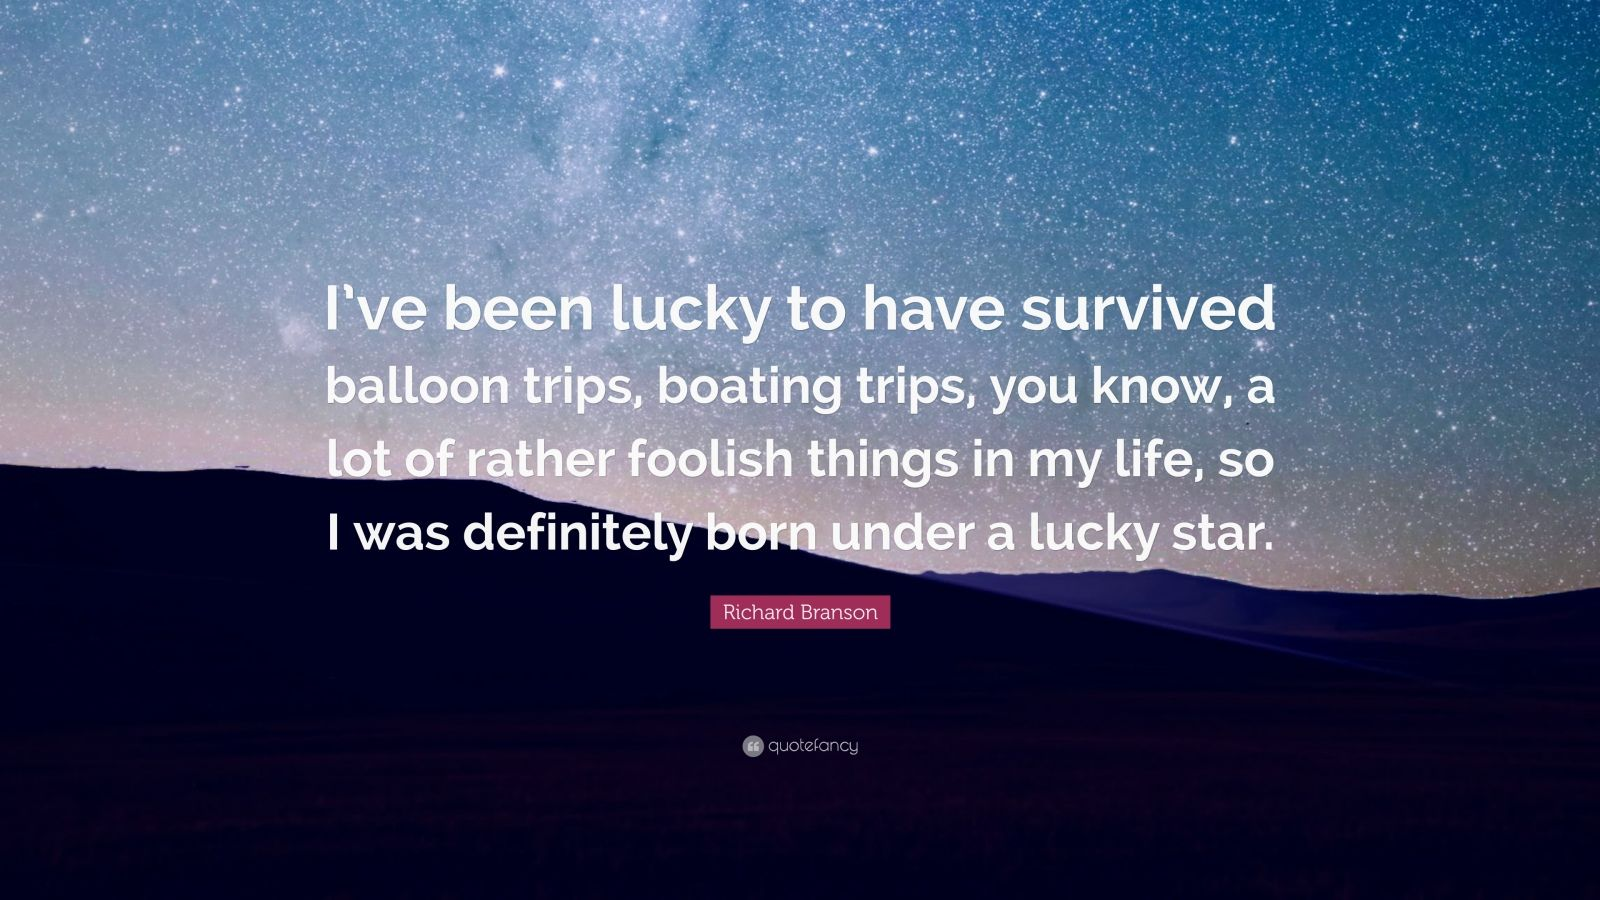 """Richard Branson Quote: """"I've been lucky to have survived balloon trips, boating trips, you know, a lot of rather foolish things in my life, so I was definitely born under a lucky star."""""""